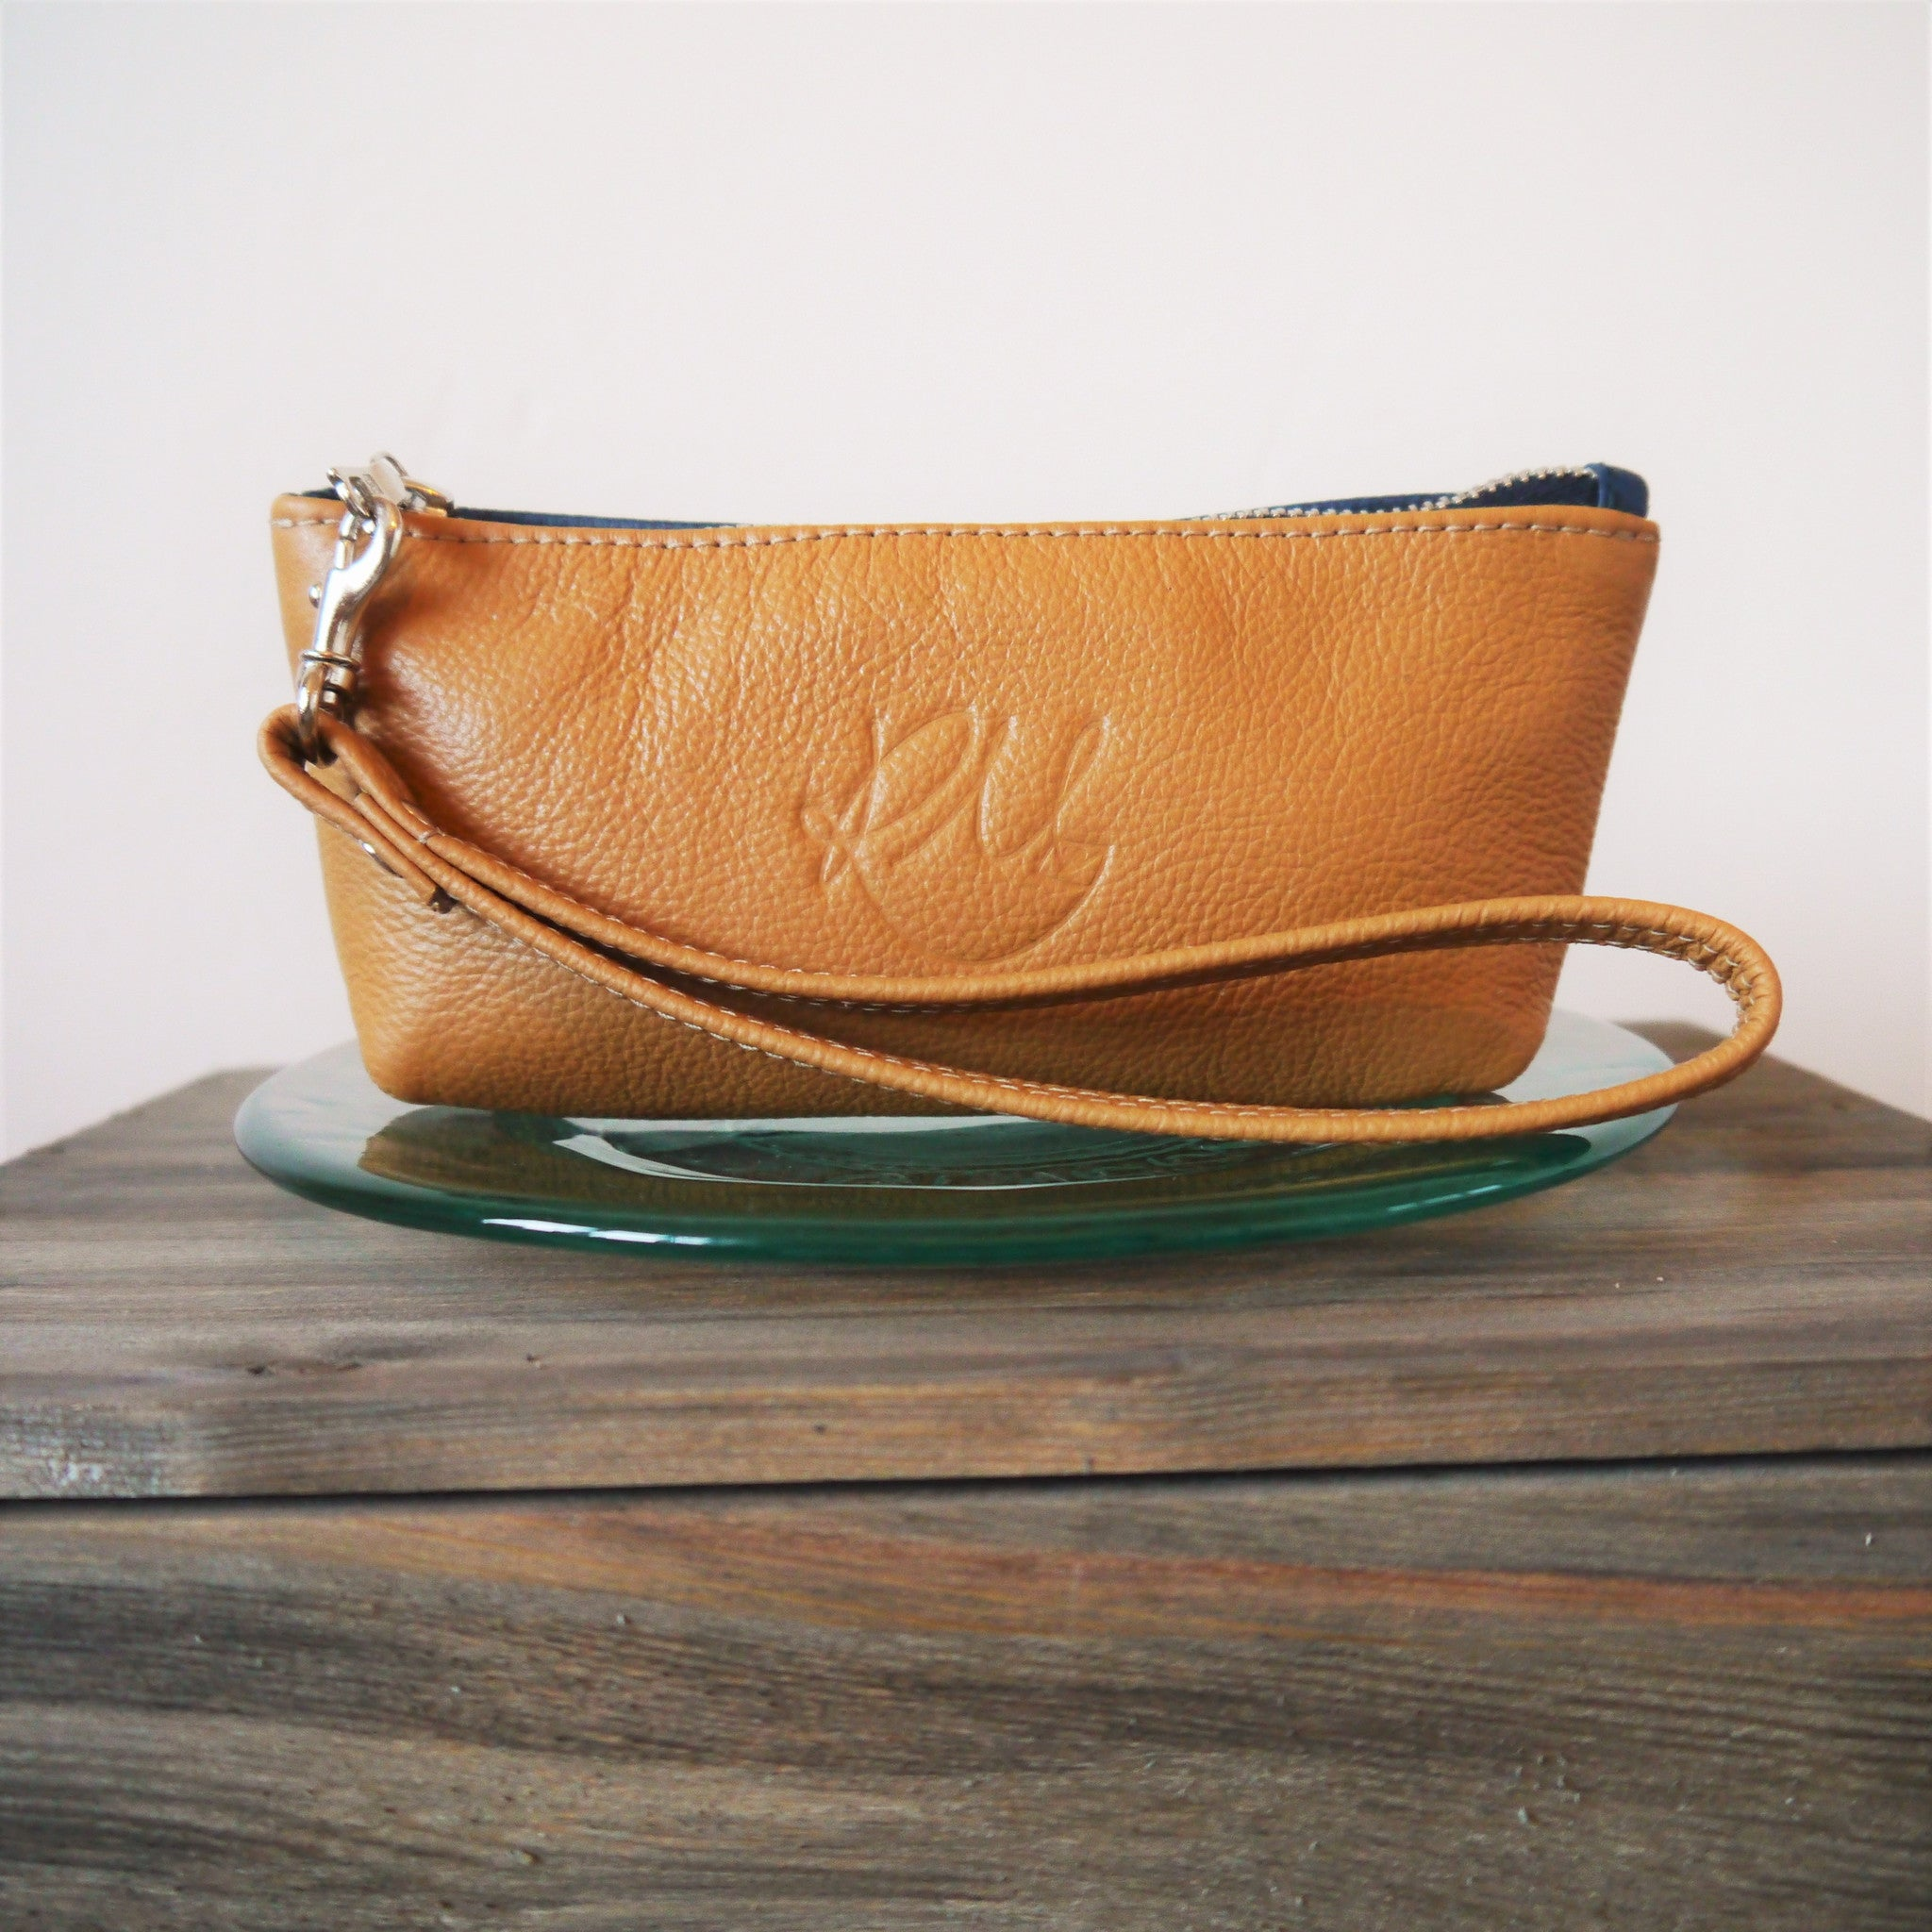 S/S16 Poppy small leather make up bag - Tan and Navy